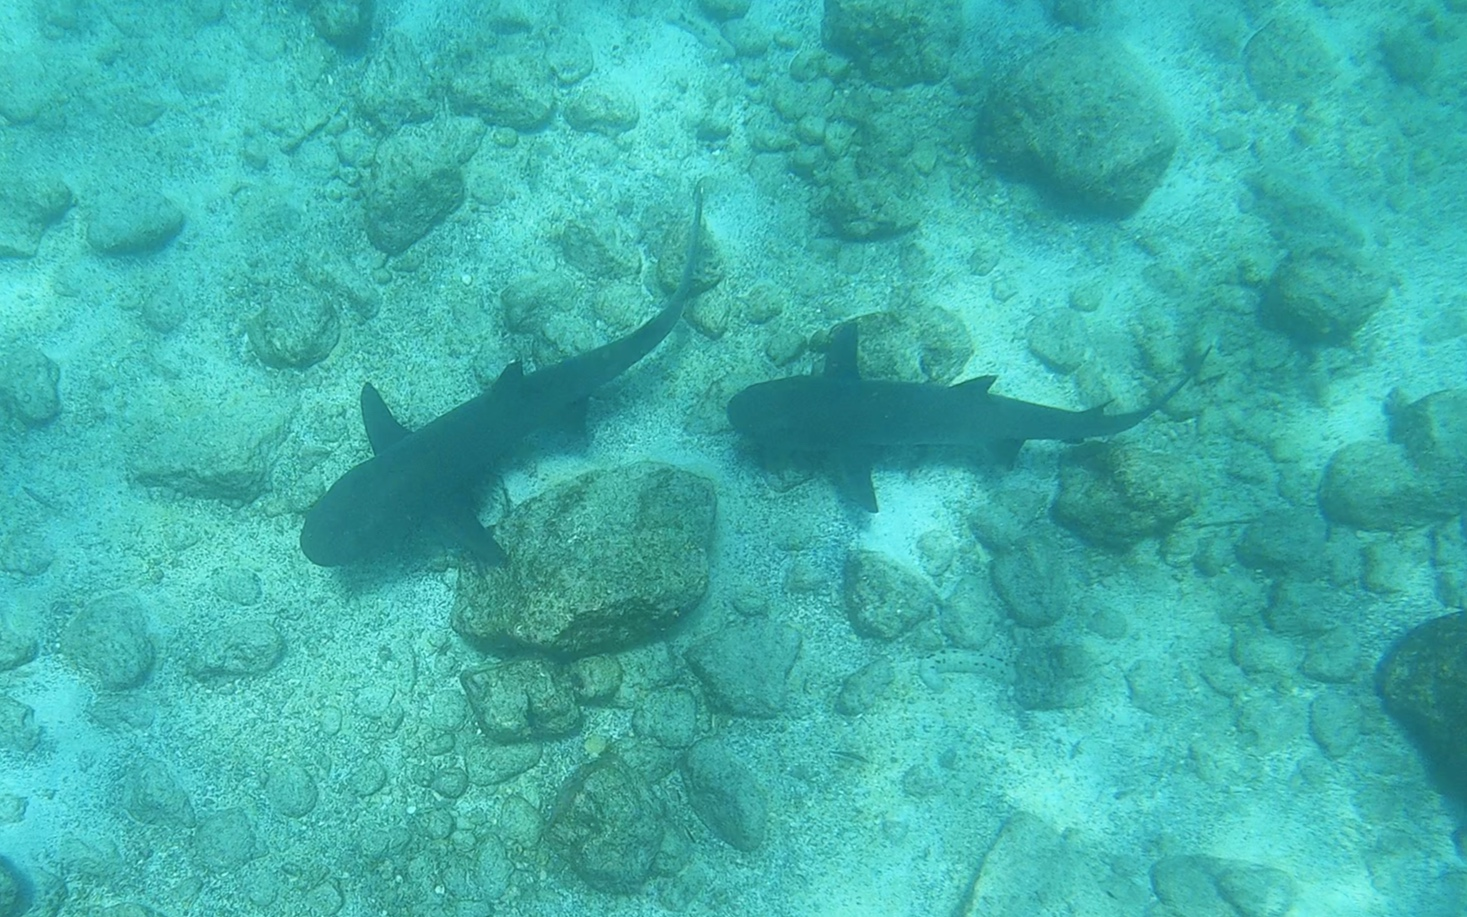 We swam with sharks.